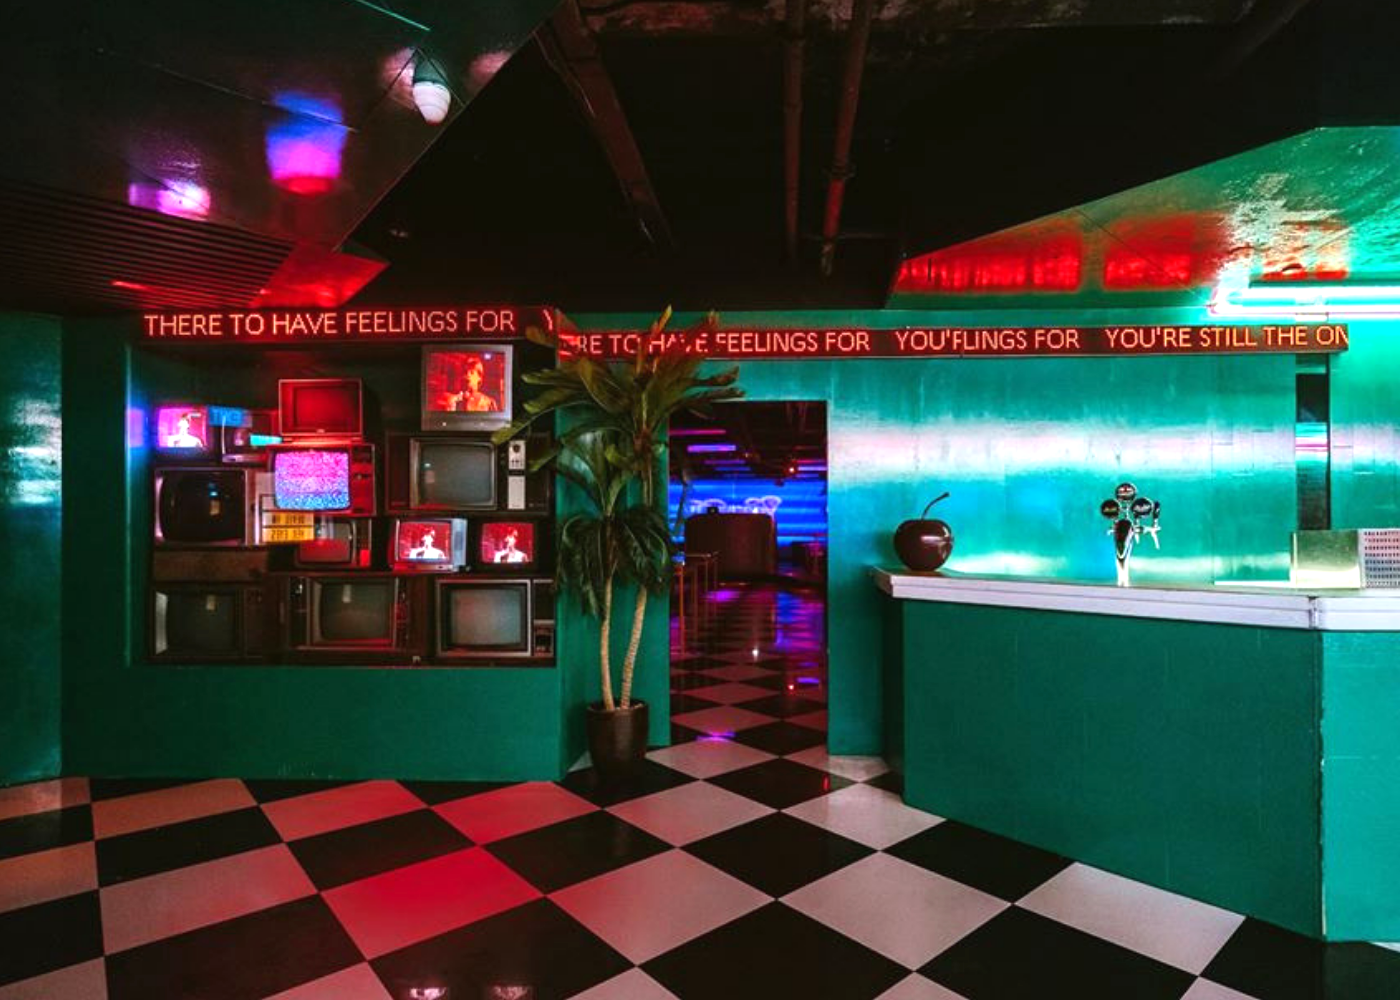 Best arcade bars and clubs in Singapore | Cherry Discotheque